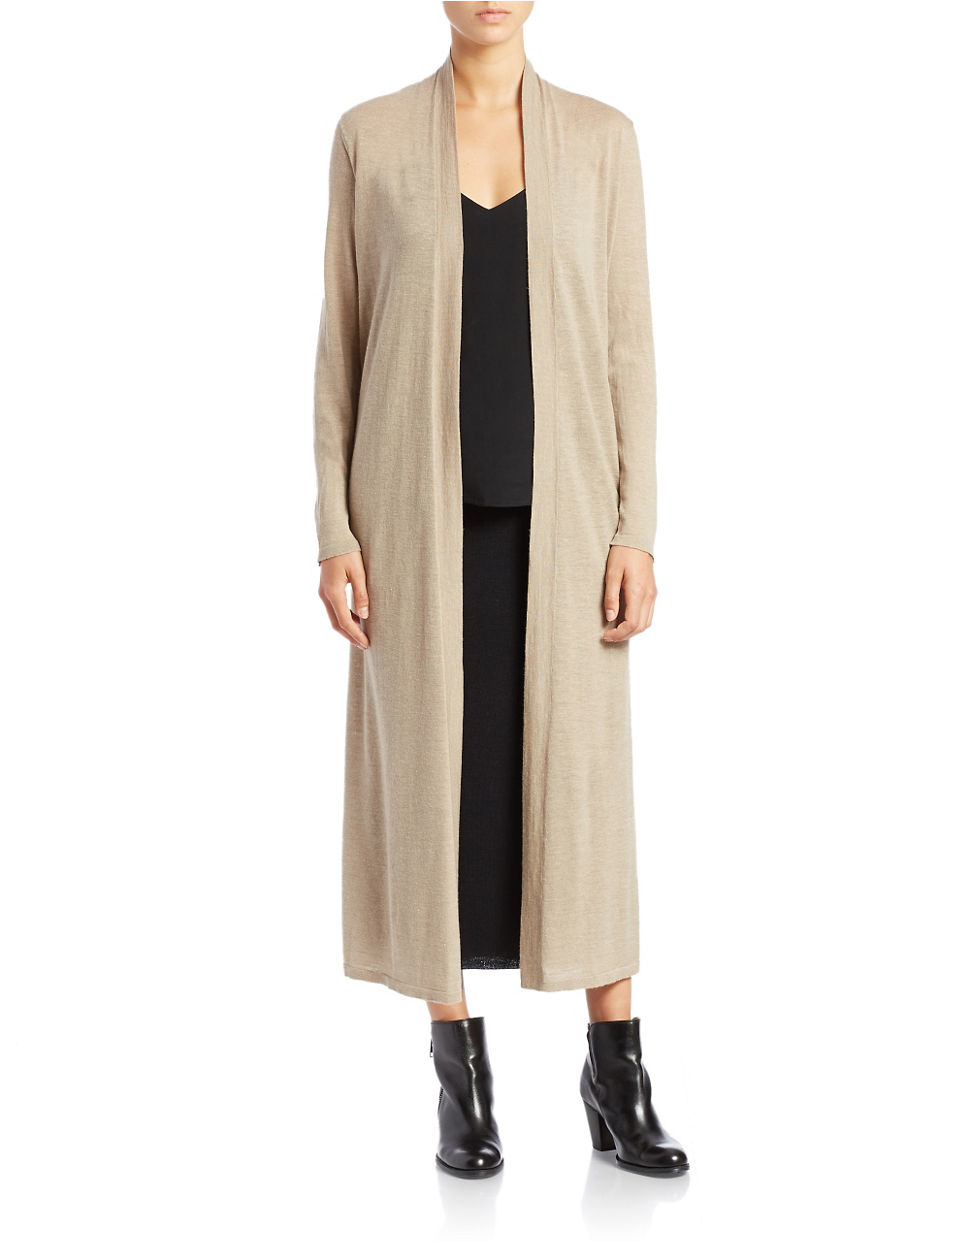 Eileen fisher Wool/linen Maxi Cardigan in Gray | Lyst